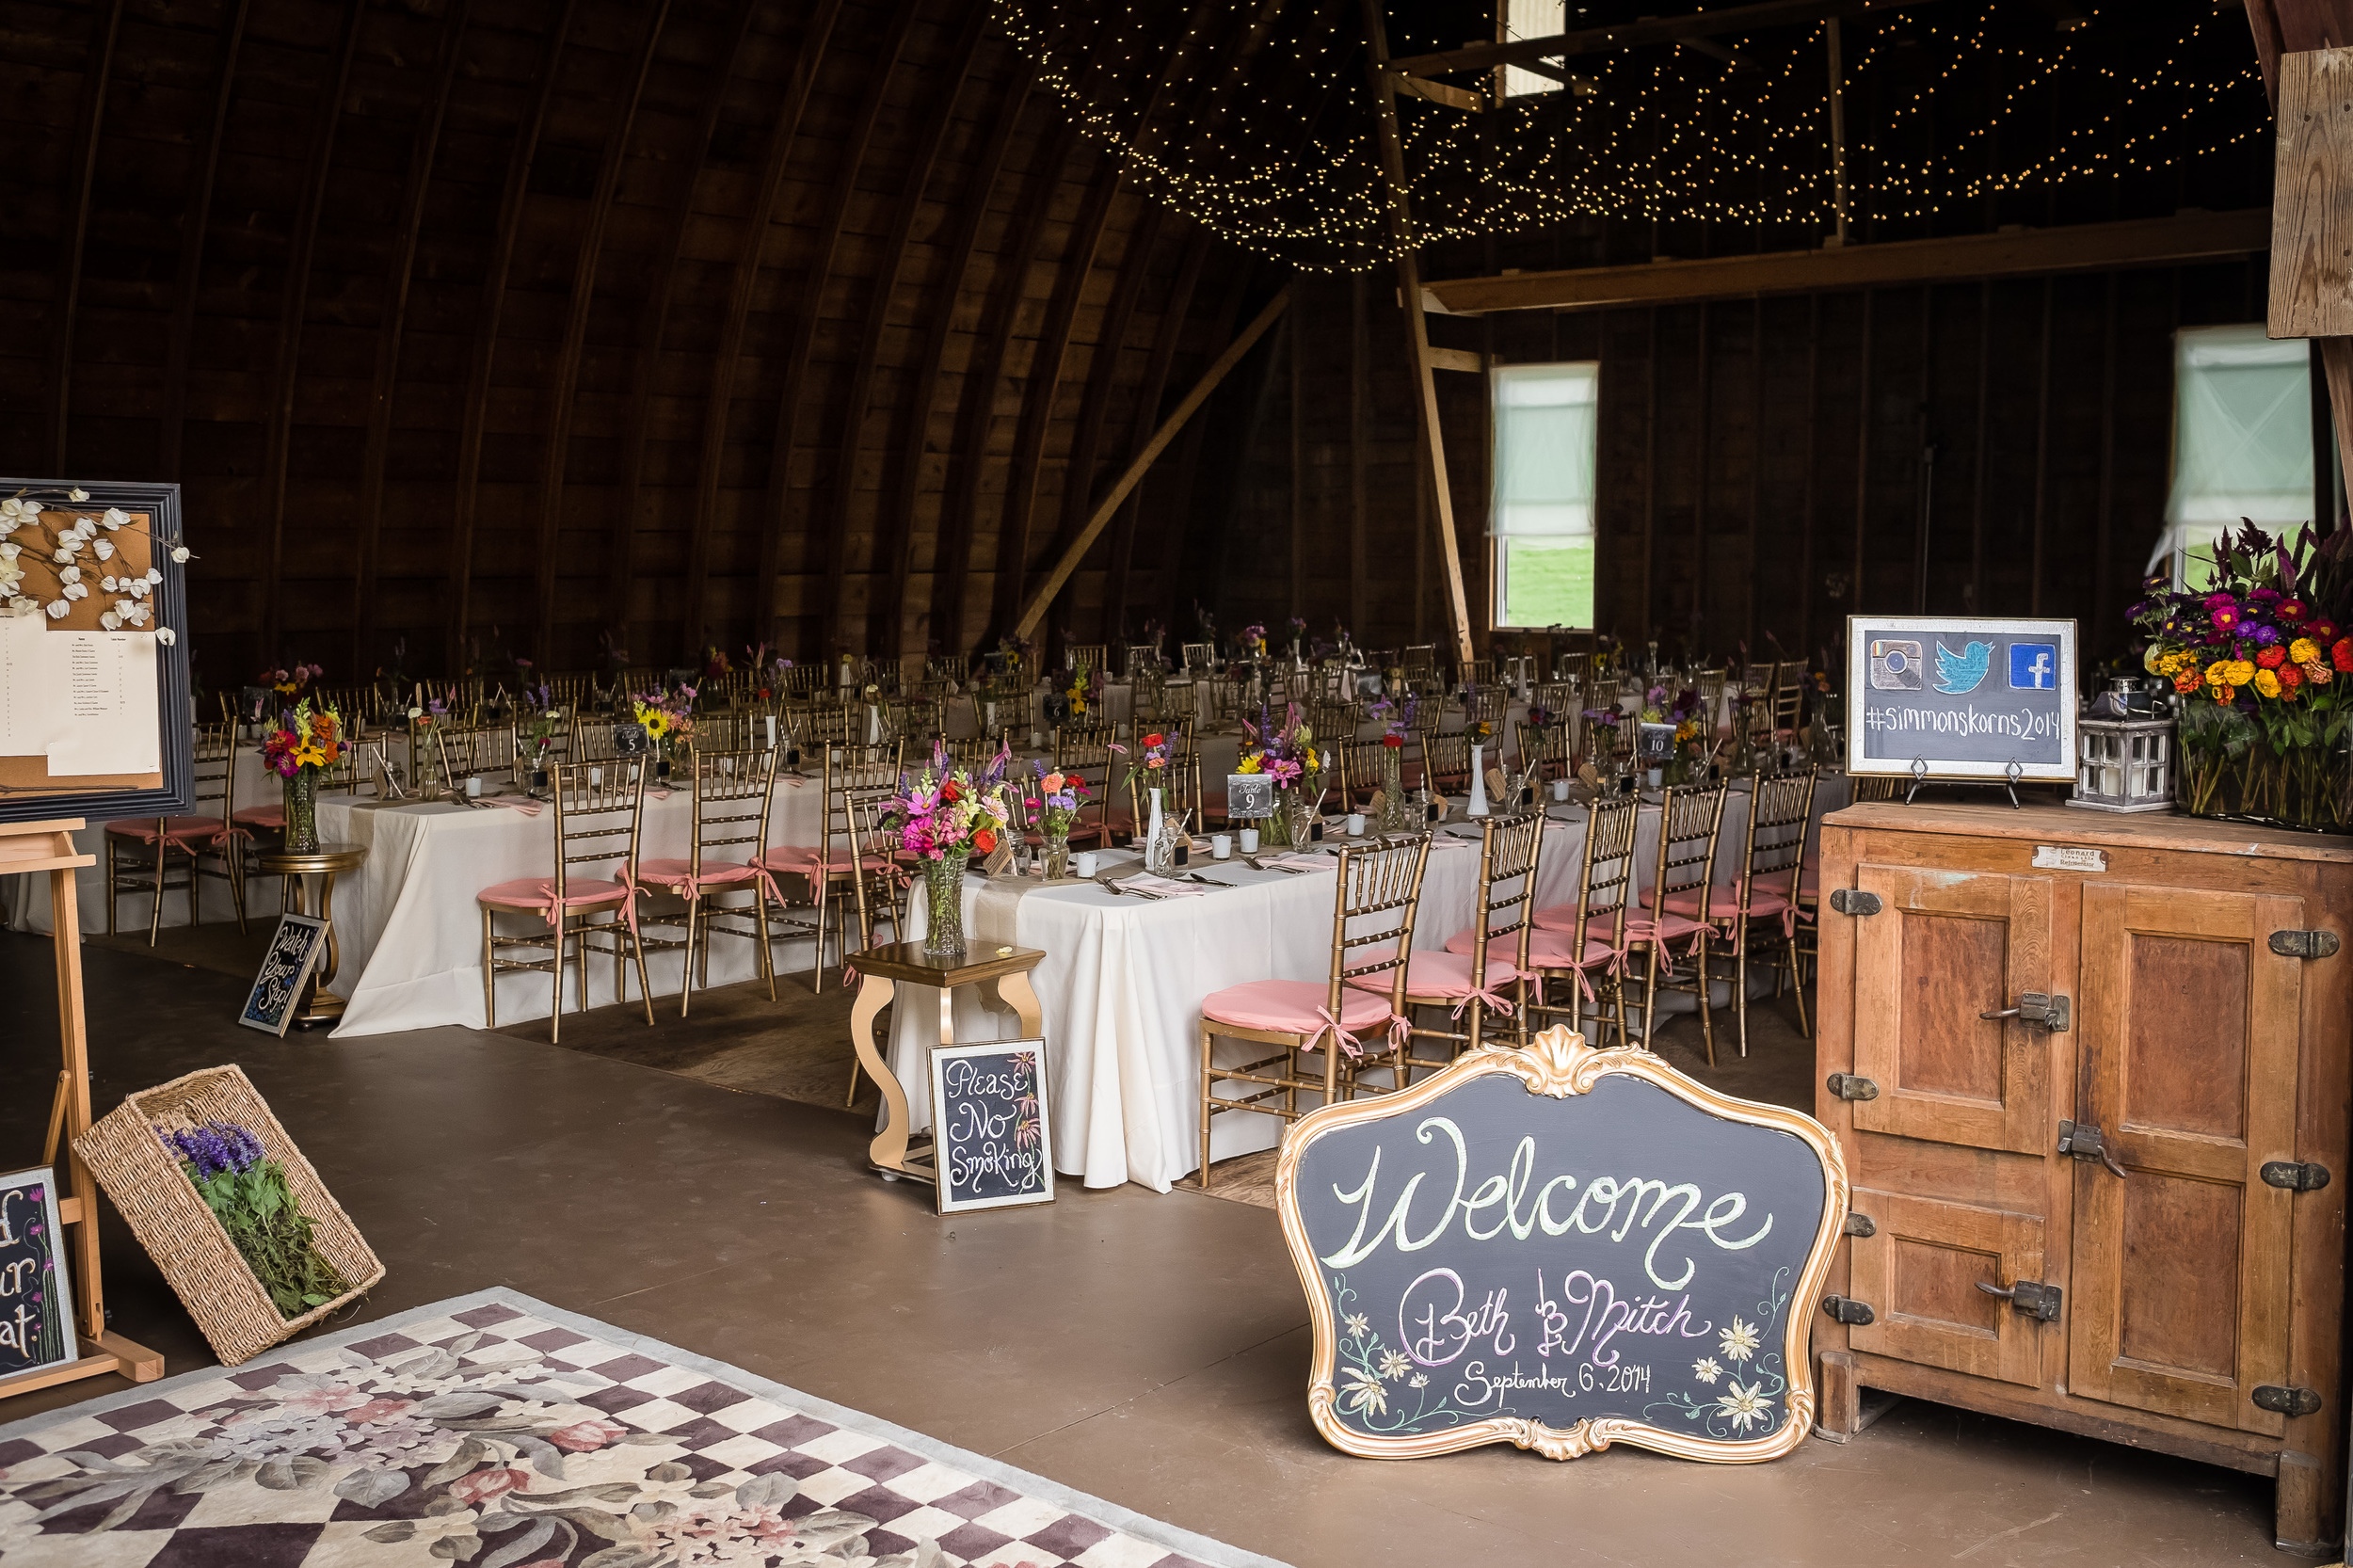 The view that greets guests as they enter the barn reception